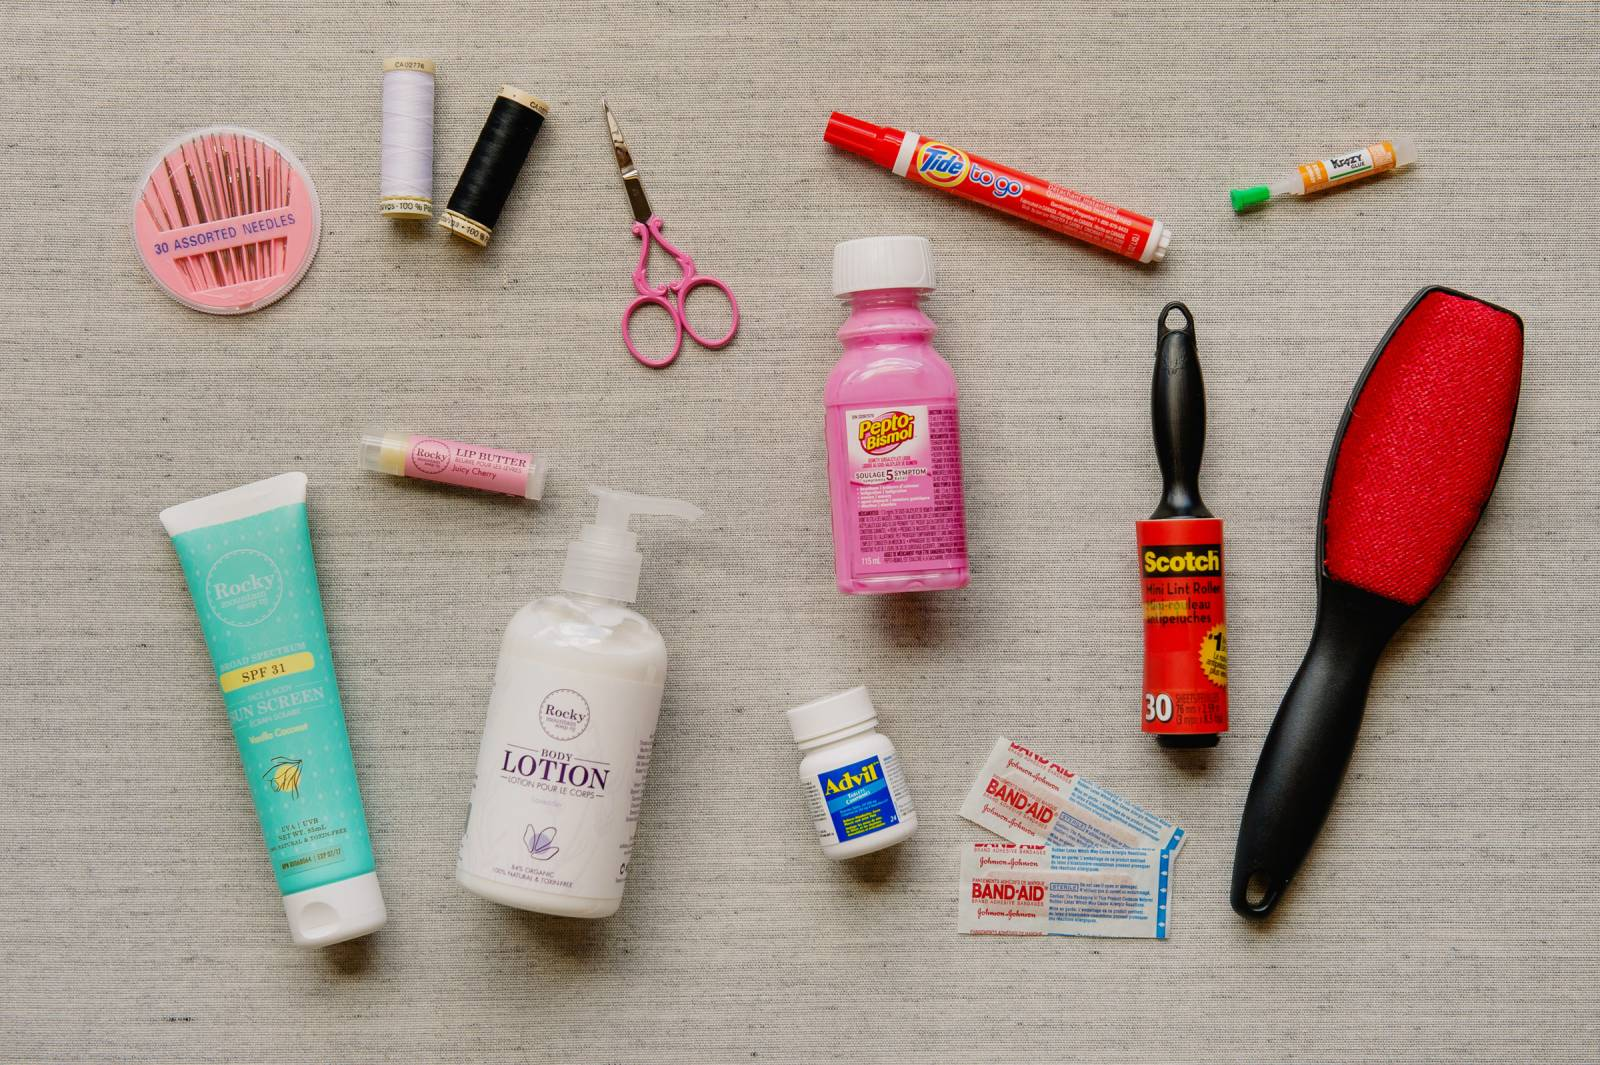 Wedding Day Emergency Kit.Wedding Day Emergency Kit 18 Essentials Every Bride Needs On Her